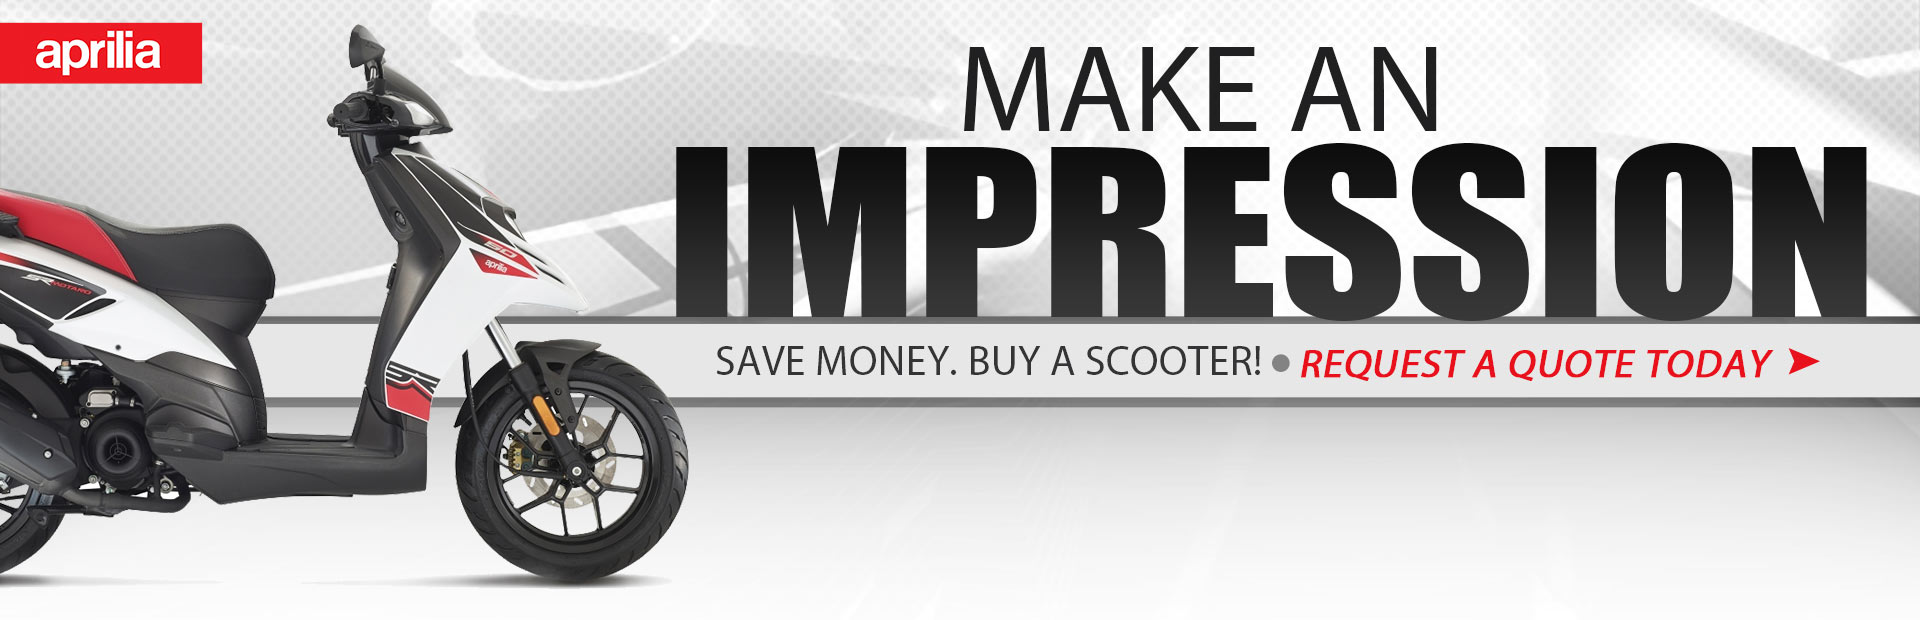 Make an impression on a Aprilia scooter. Save money. Buy a scooter! Request a quote today!